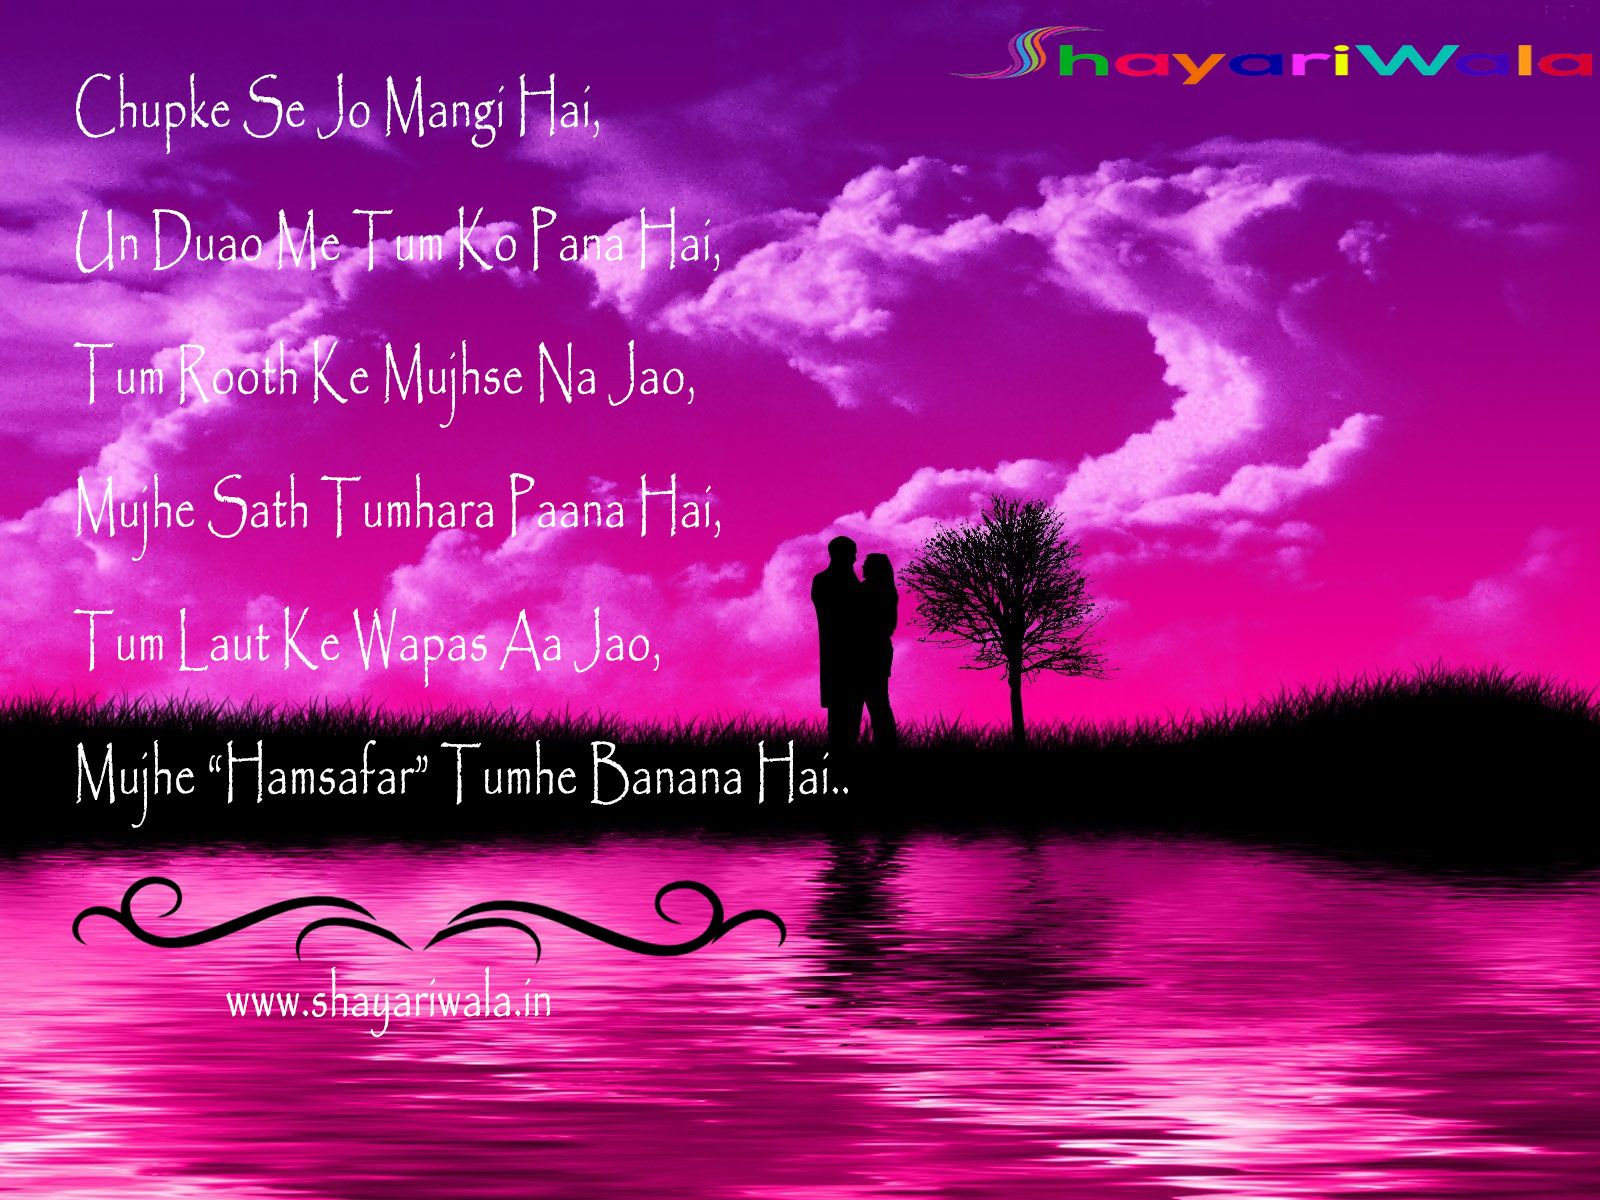 Romantic Couple With Pink Background   Romantic Love Wallpapers For .